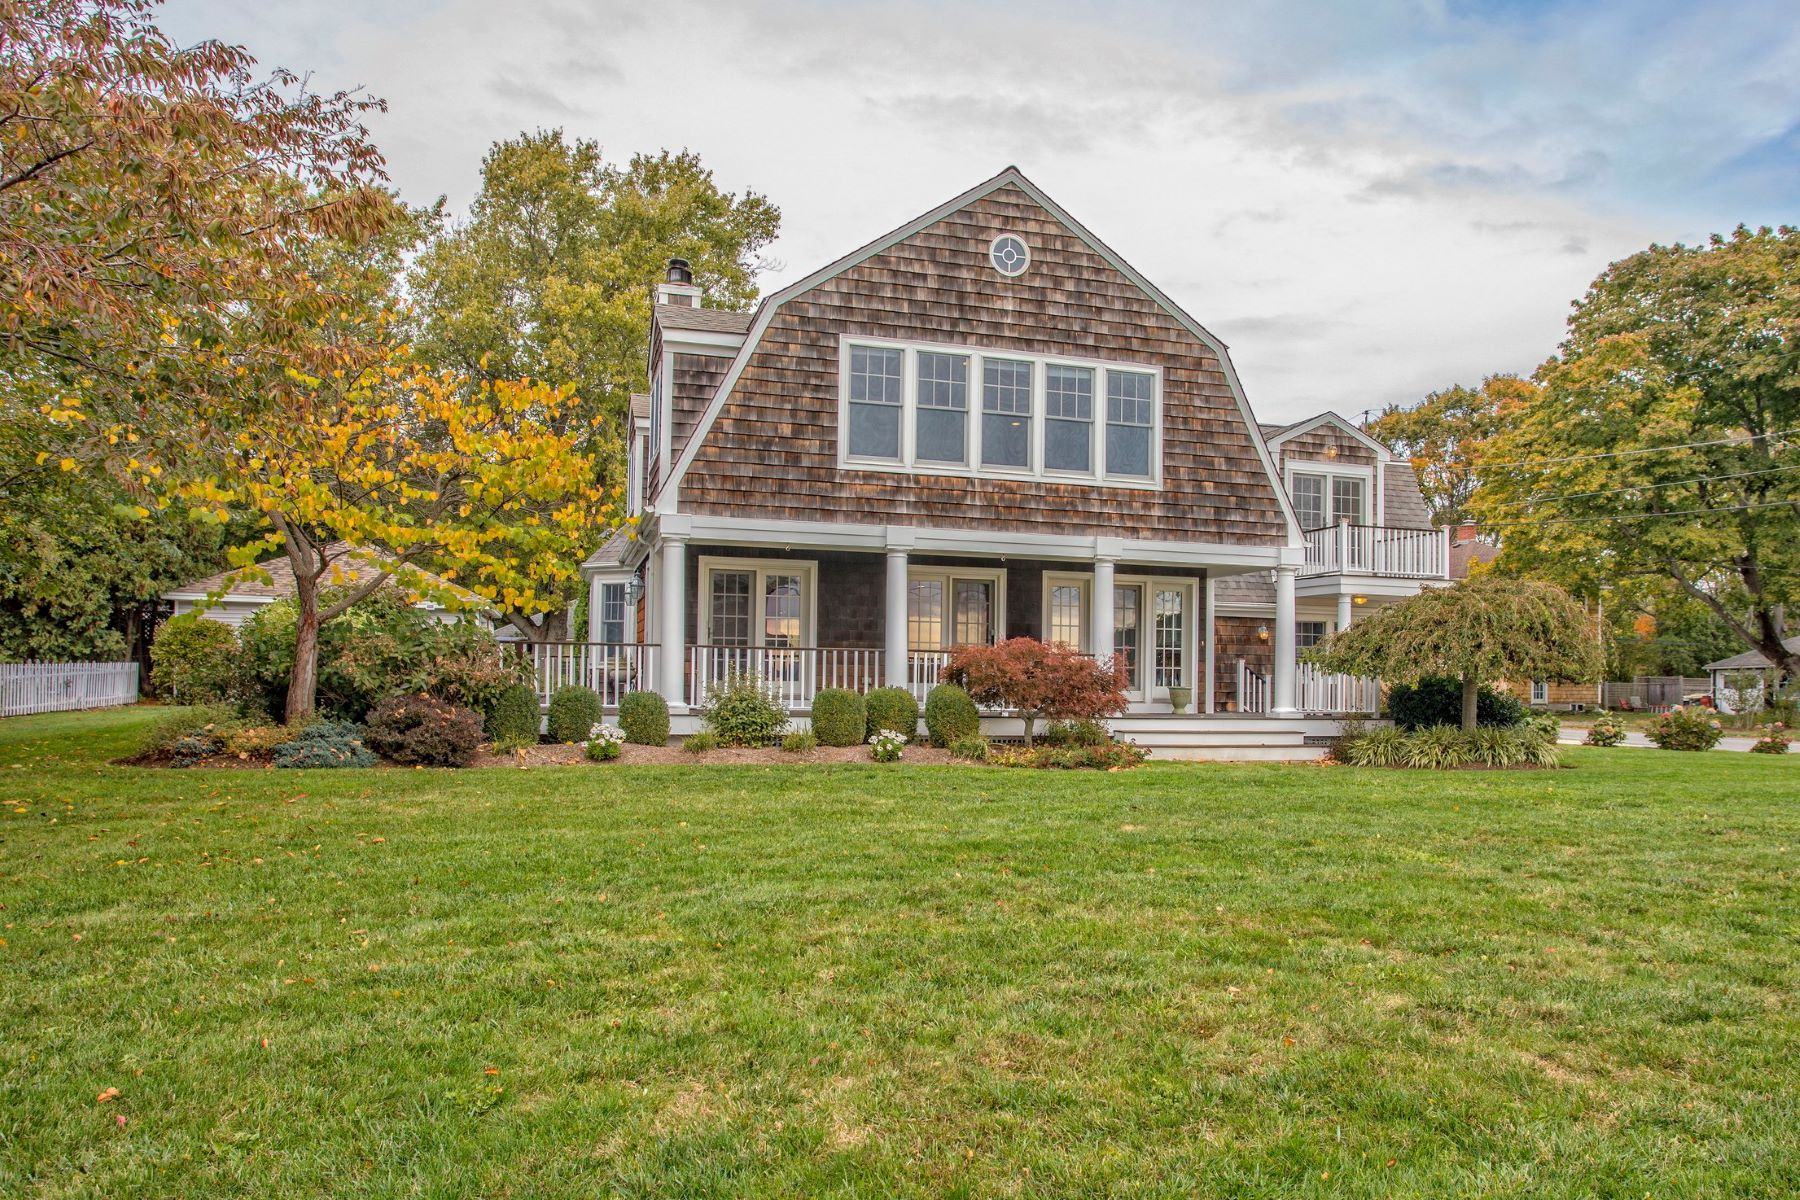 Single Family Home for Sale at Coastal Cottage 2 Bayview Avenue Warren, 02885 United States